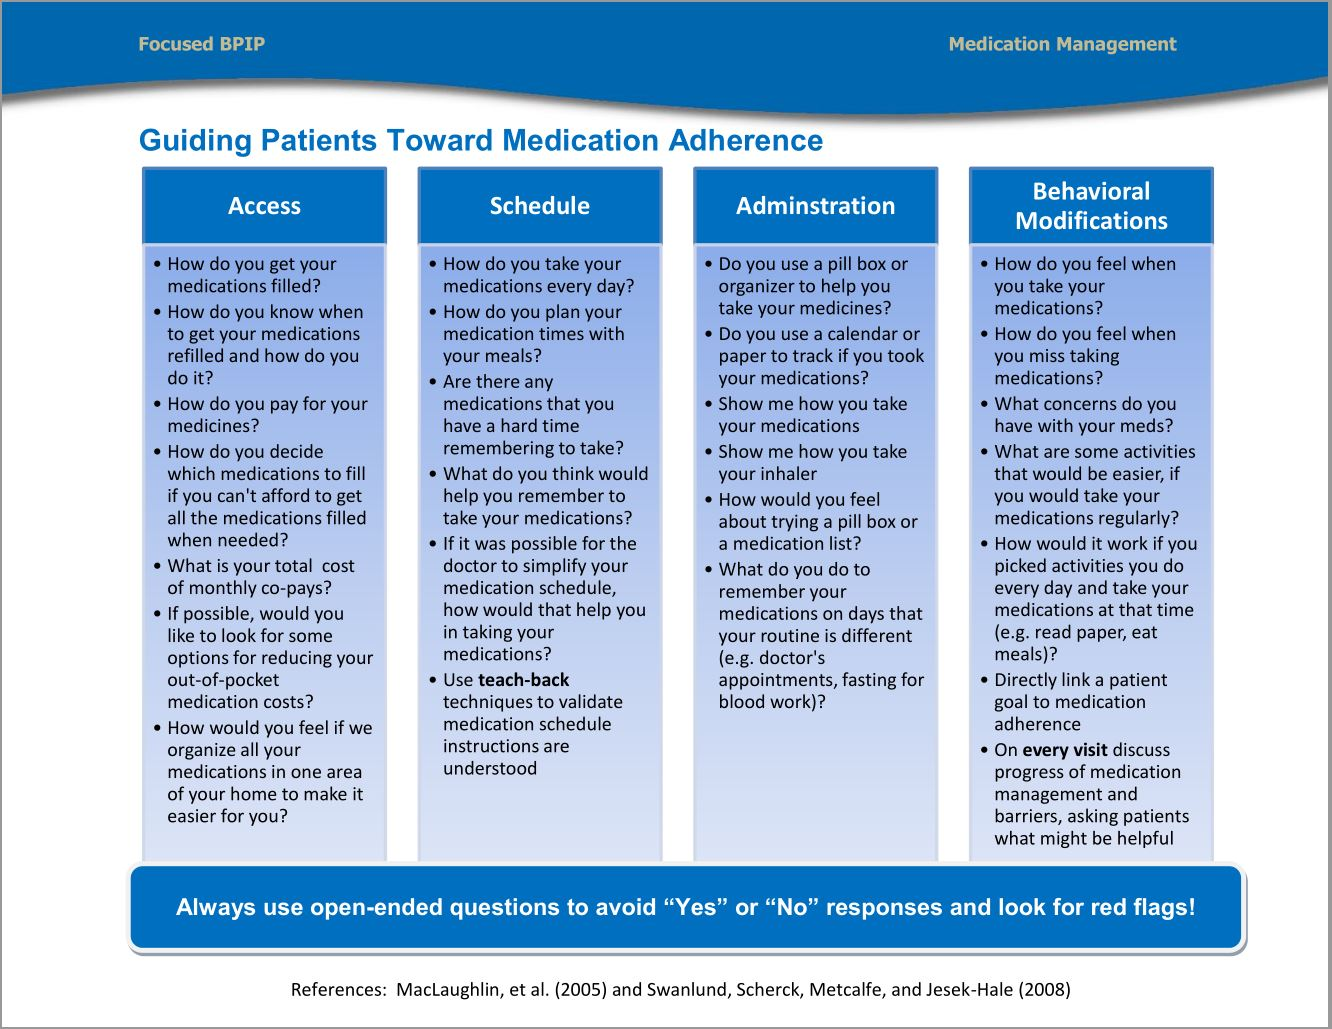 Guide Patients Towards Medical Adherence